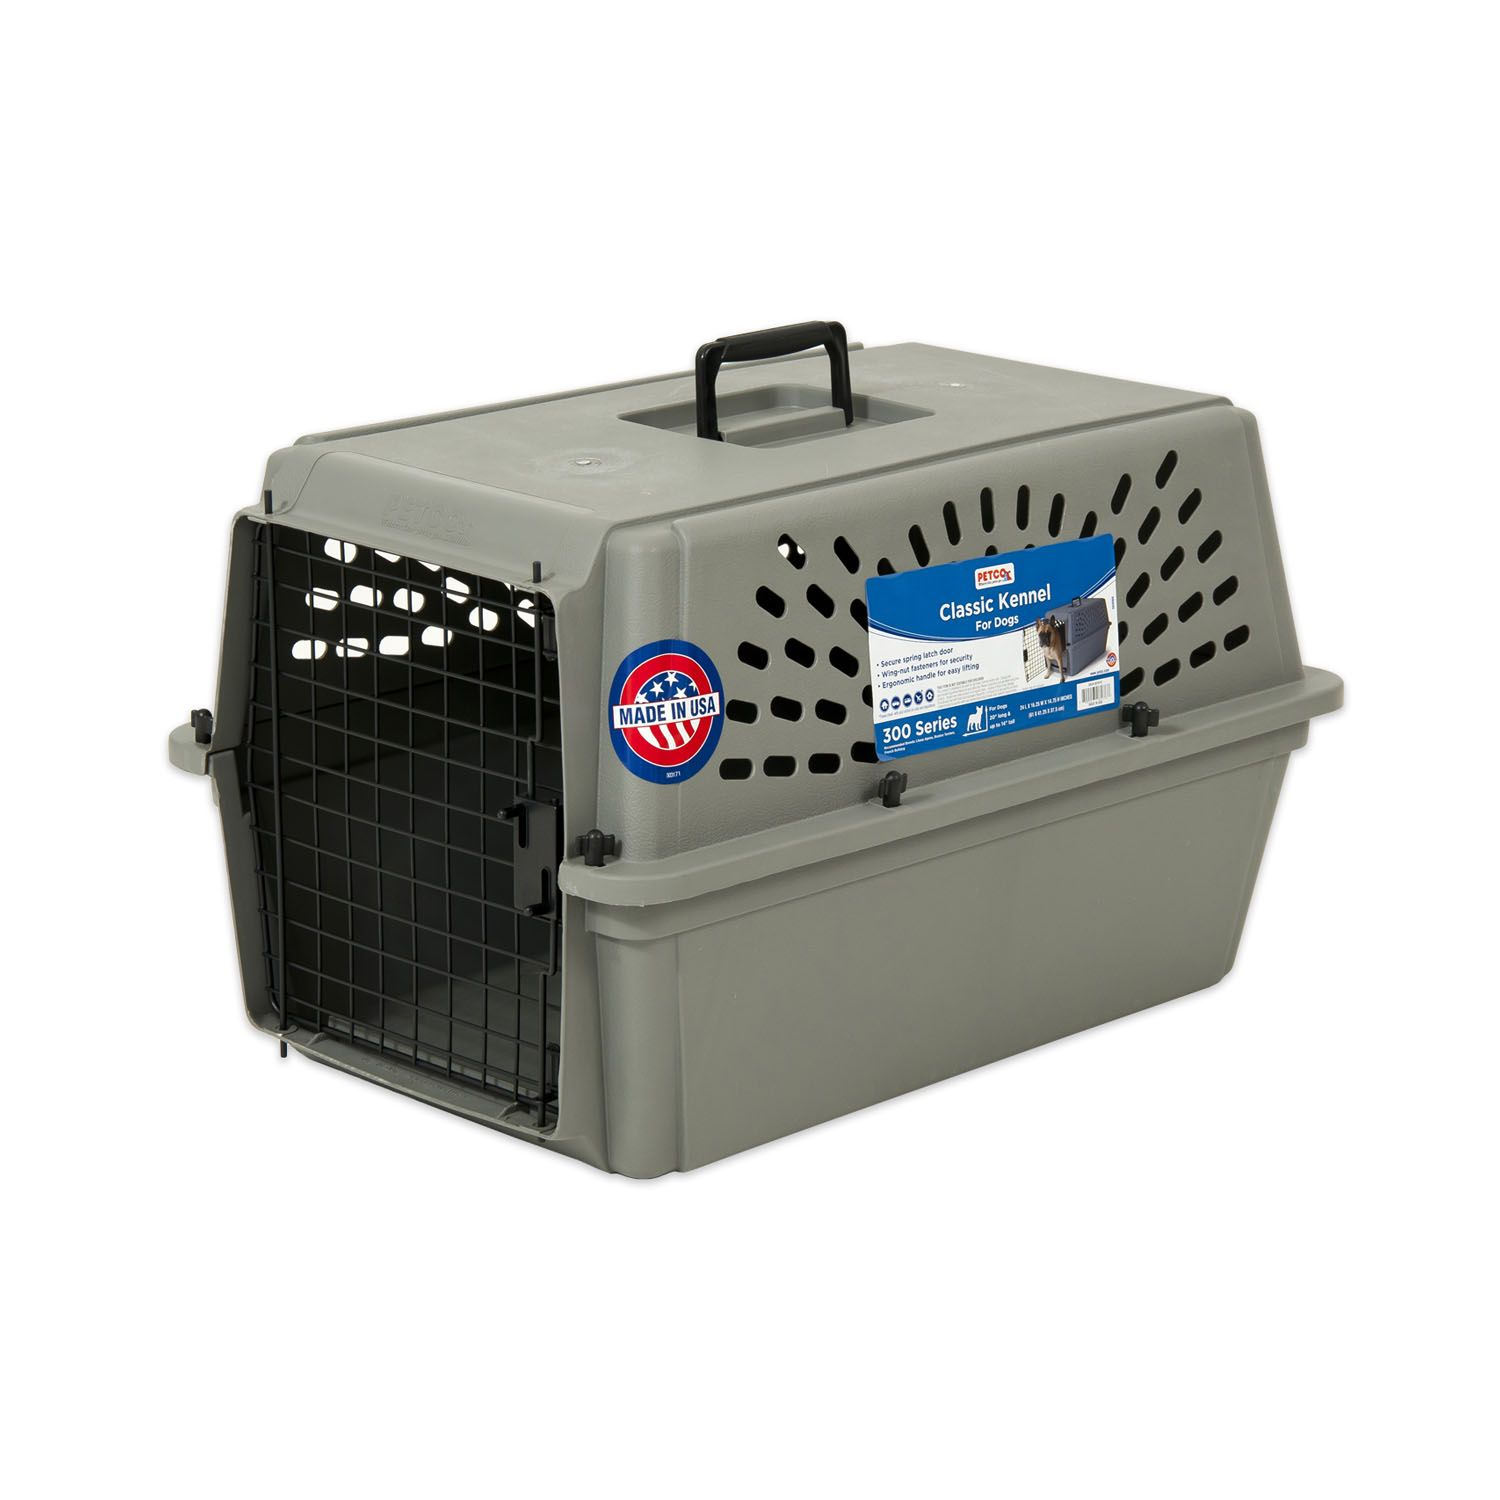 Petco Classic Kennel 40 L X 27 W X 30 H Model 800 Series For